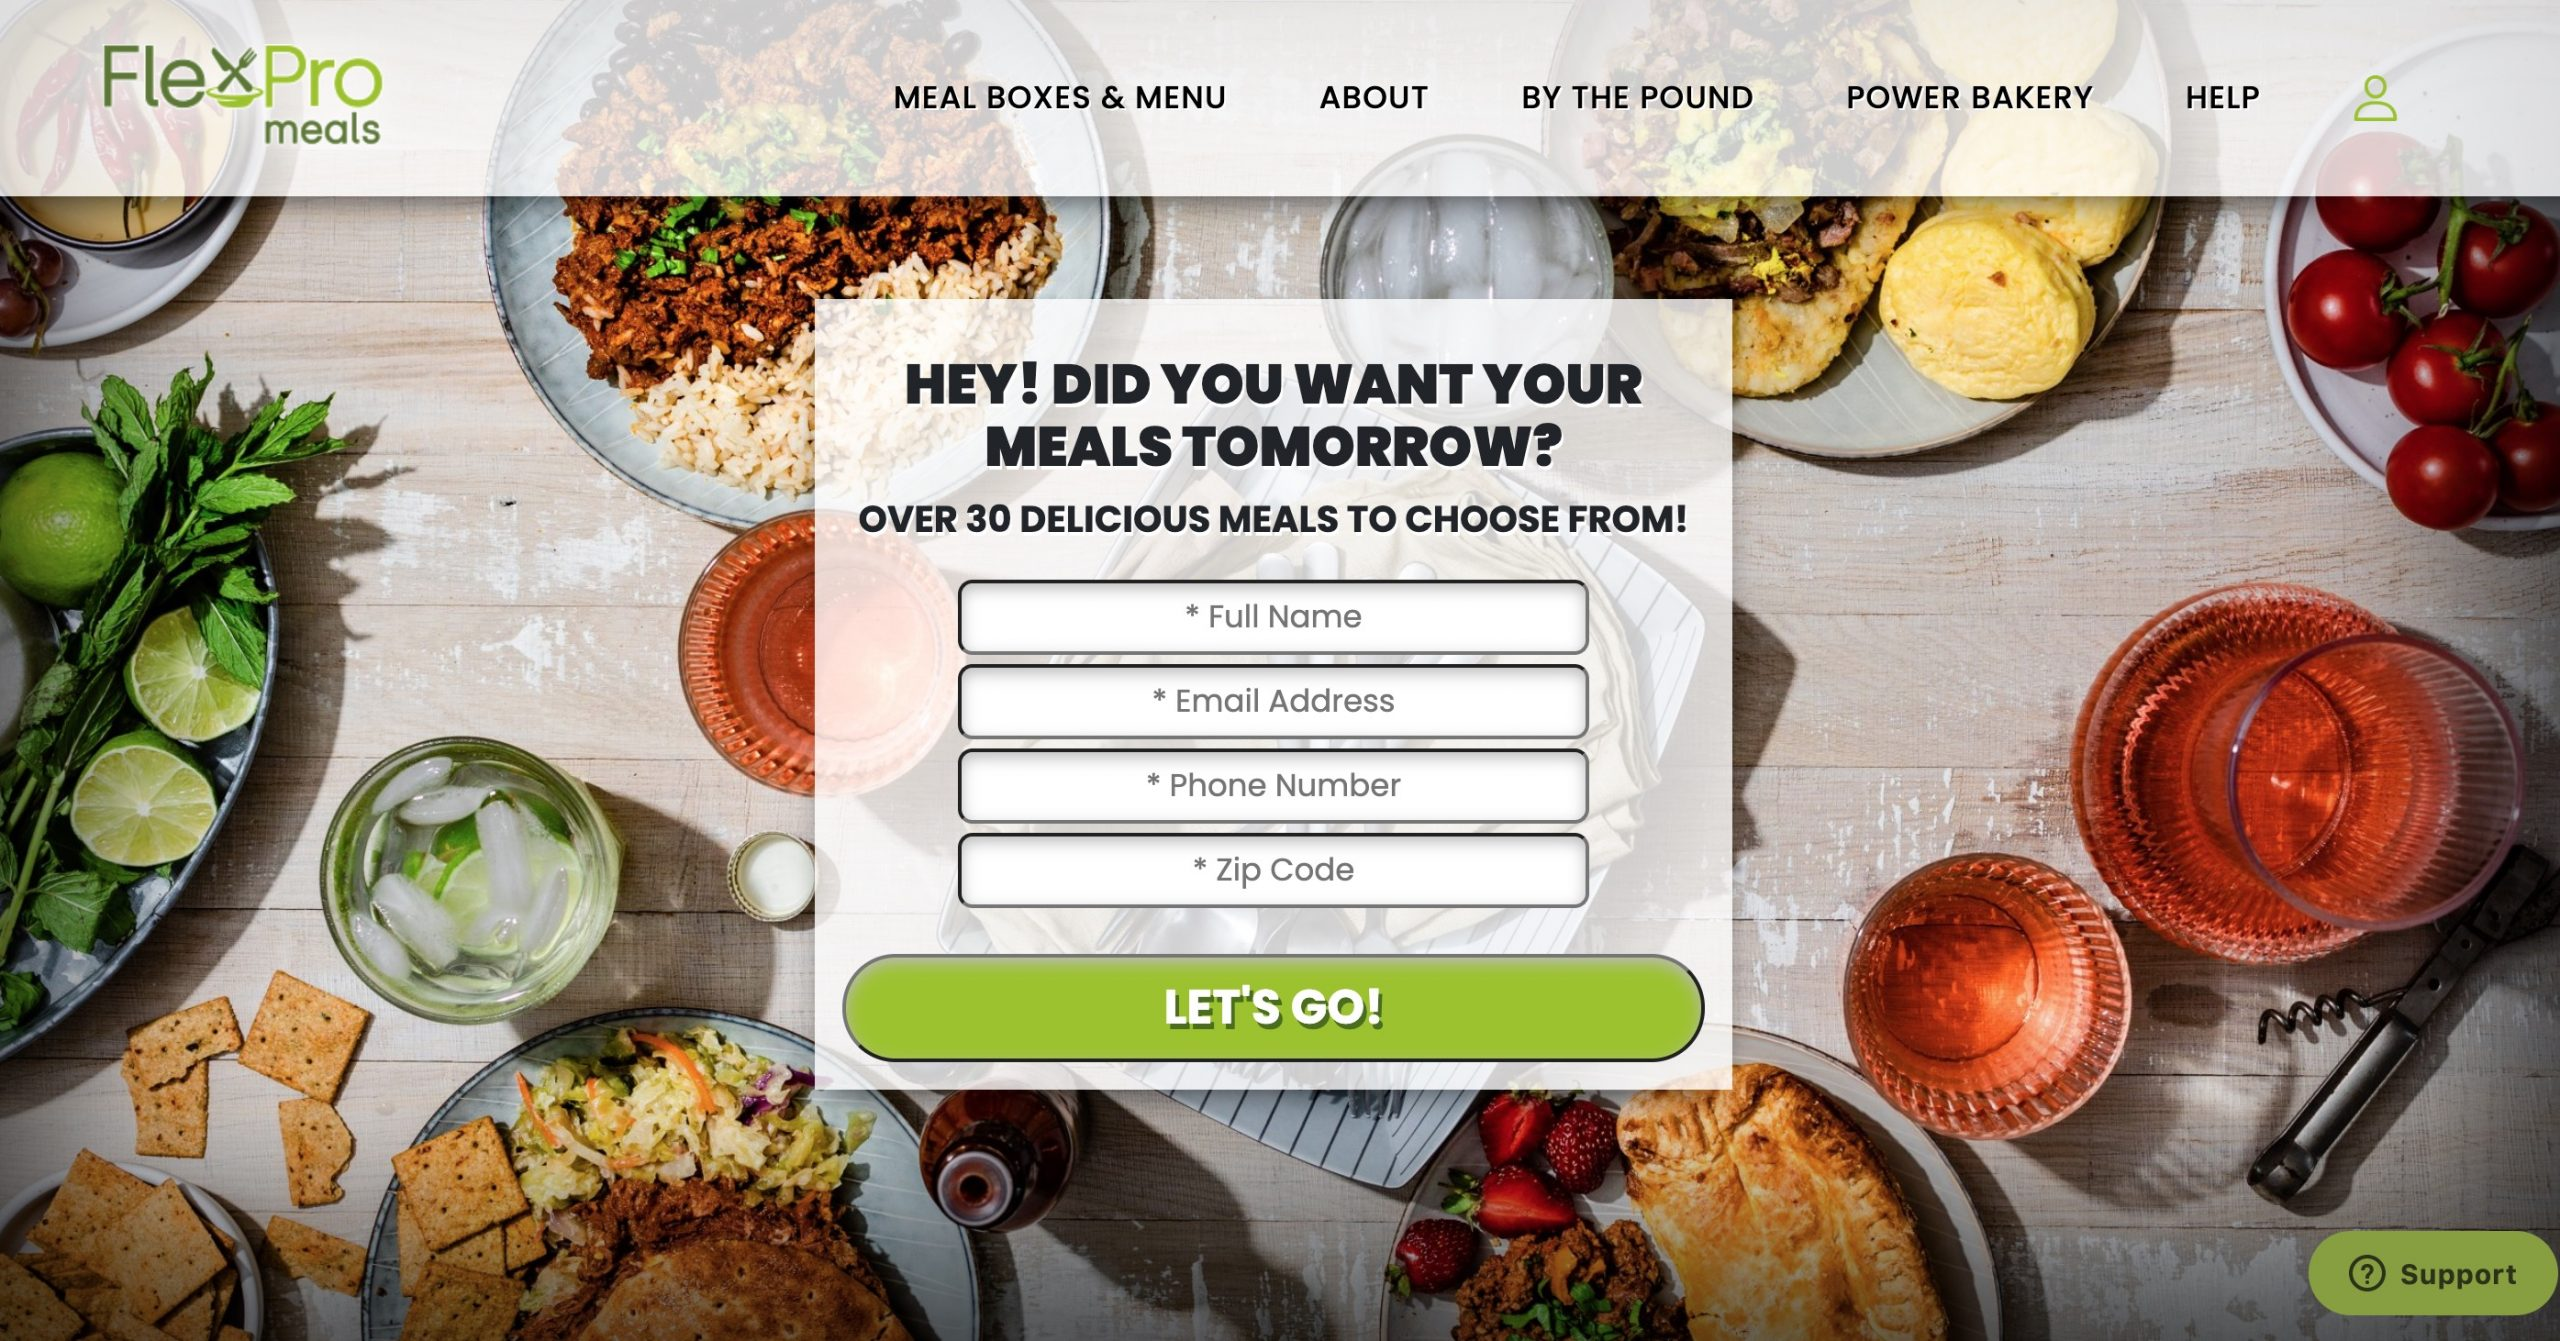 flexpro meals main page